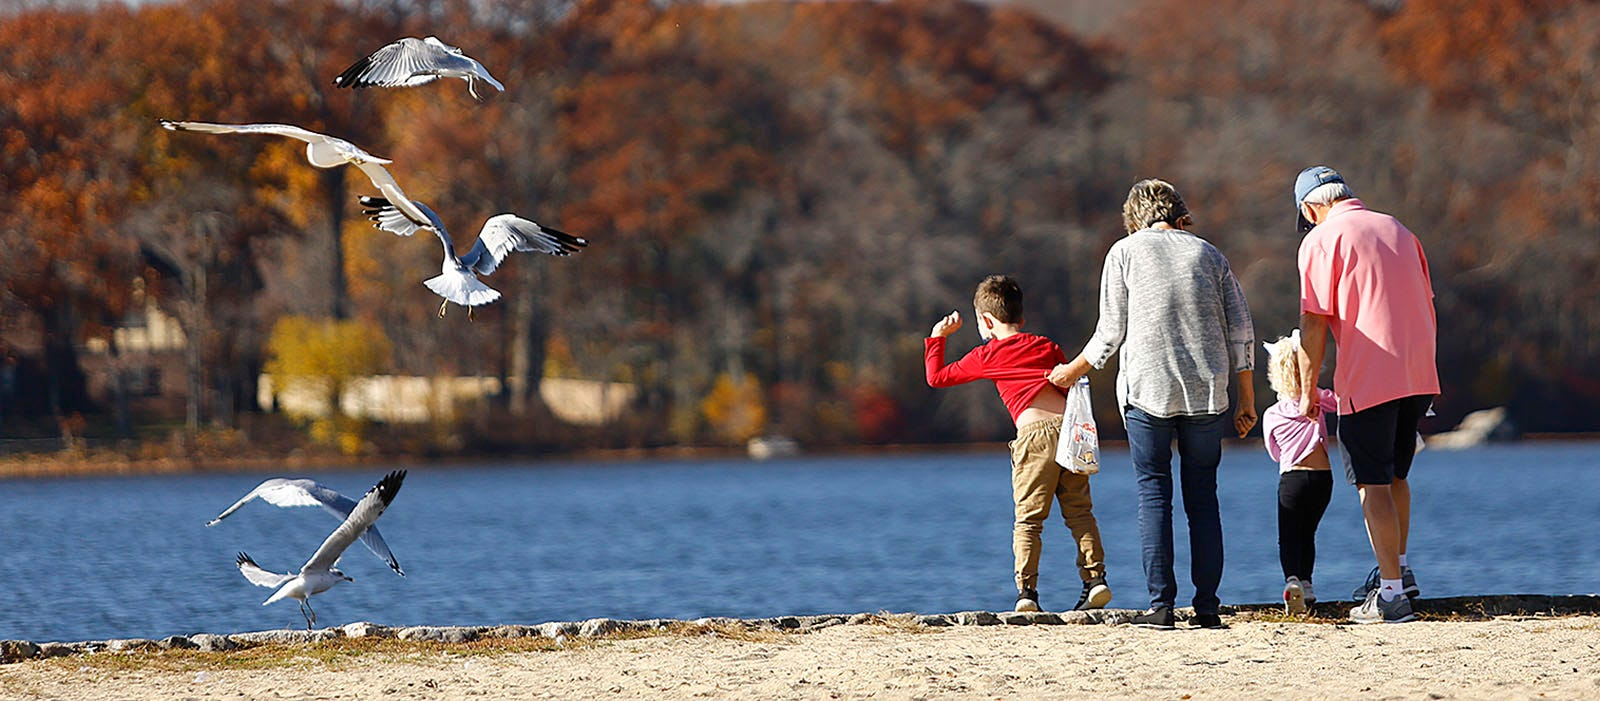 Siblings Jack, 5, and Emma, 3, Levangie feed birds with grandparents Denise and Richard Norris of Braintree at Sunset Lake on Tuesday, Nov. 10, 2020.